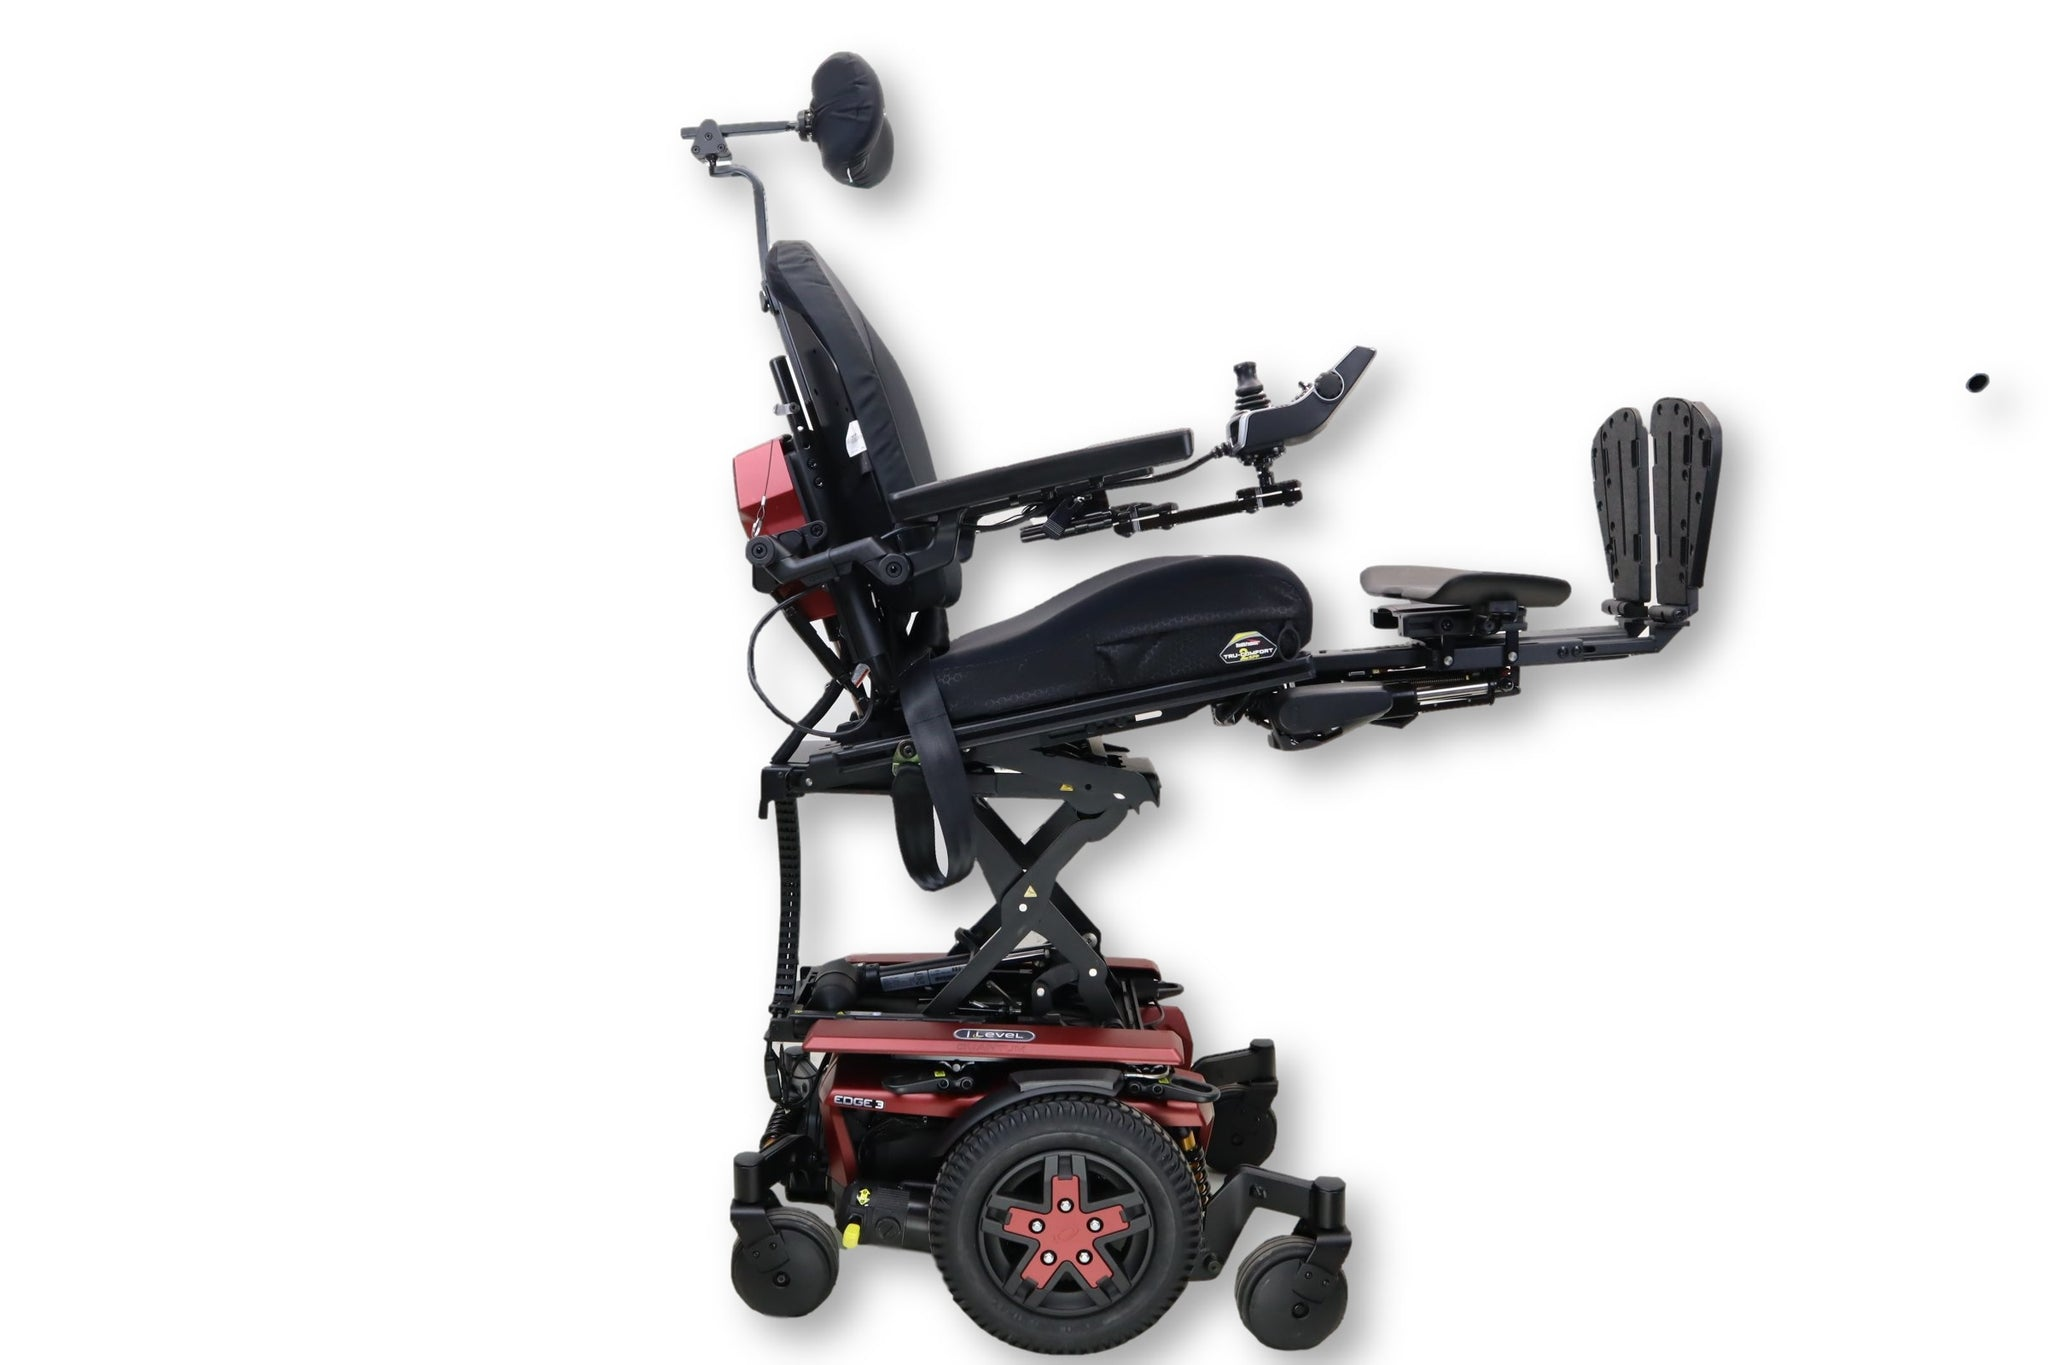 Pride Quantum Q6 Edge 3 iLevel Electric Wheelchair | Seat Elevation | Powered Tilt, Recline & Leg Elevate | 19